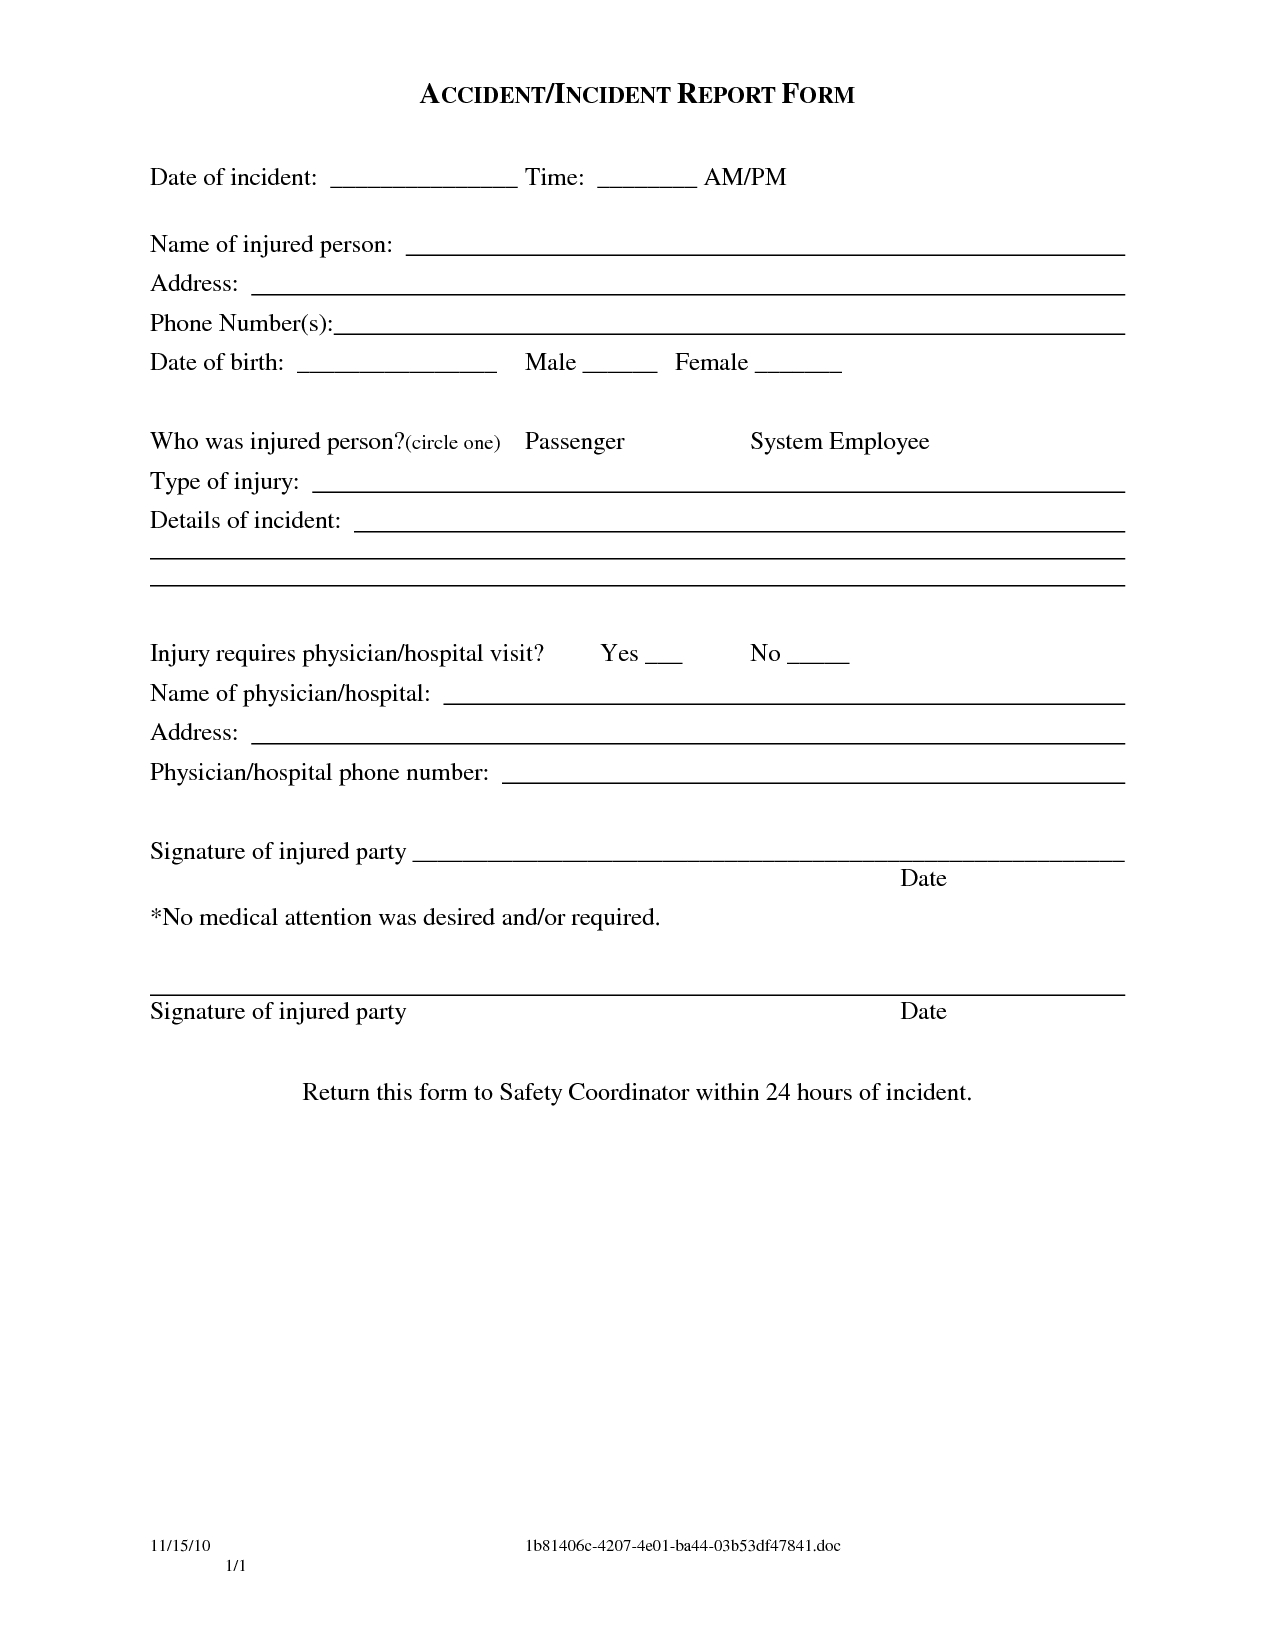 Sample Police Incident Report Template Images - Police Report - Free Printable Incident Report Form